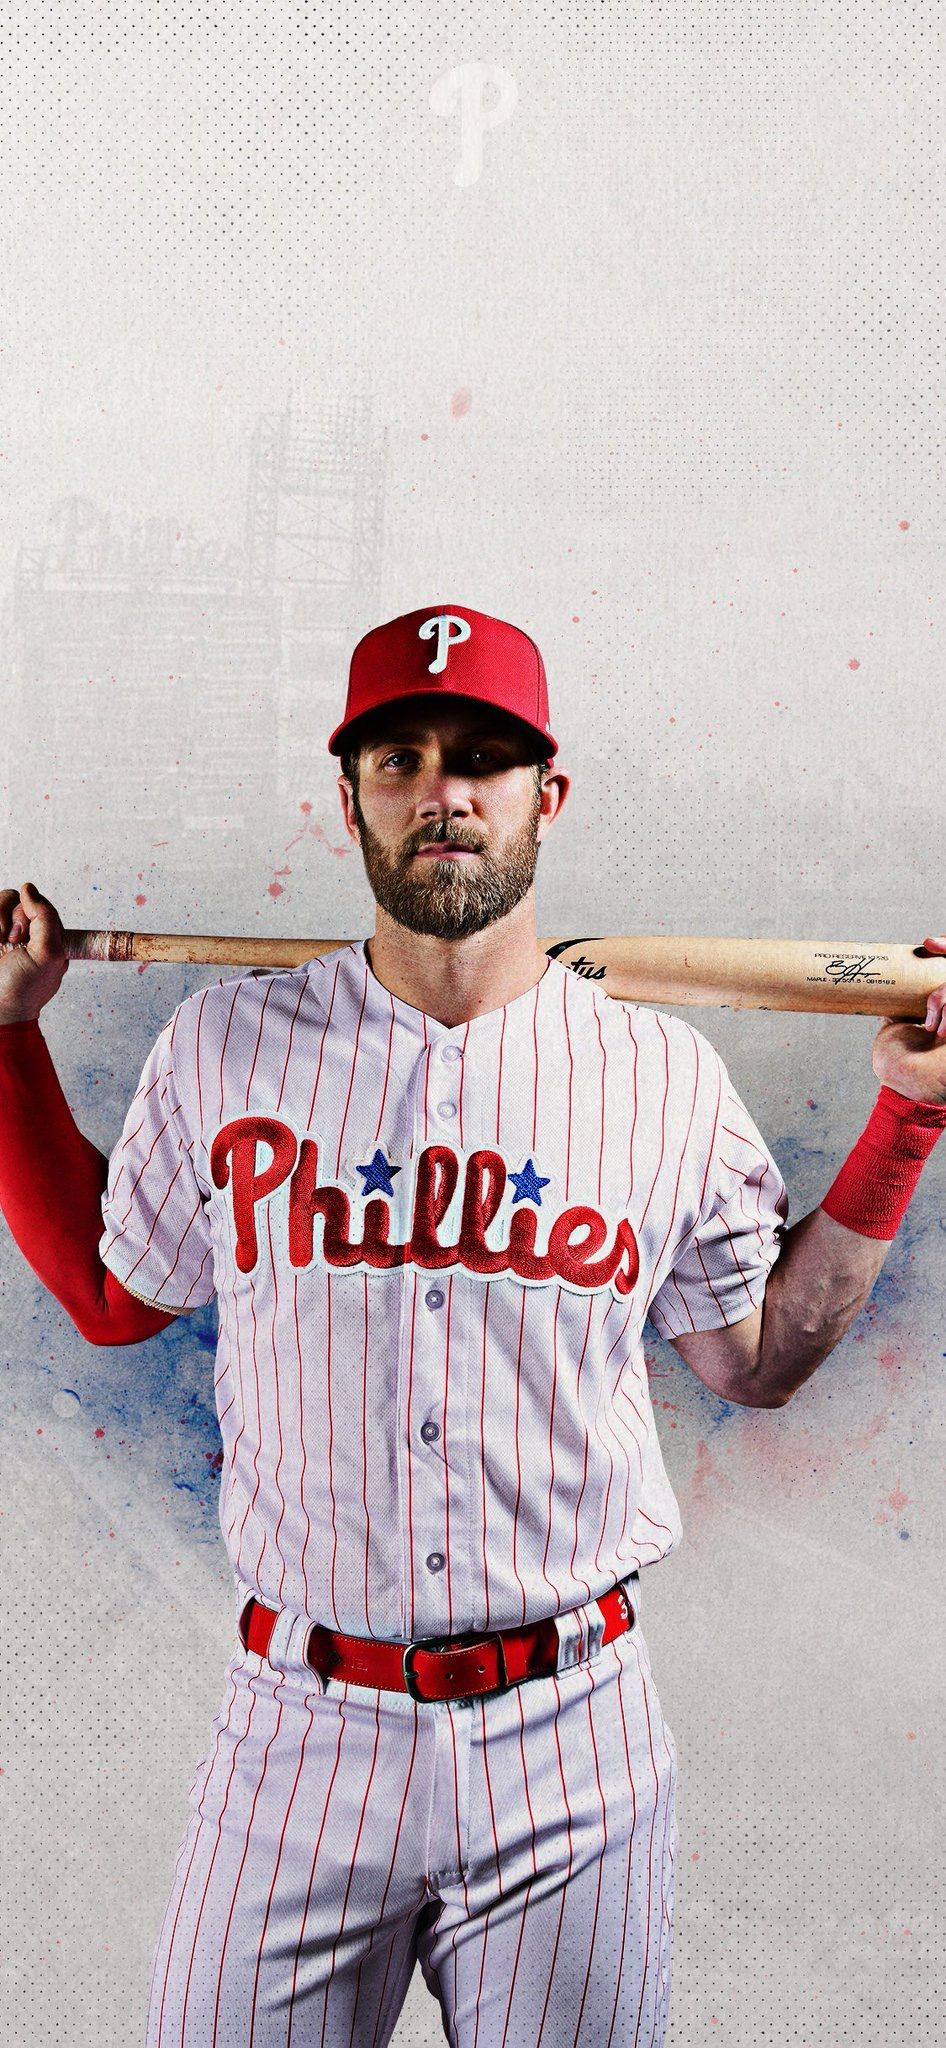 Pin By Philly Sports Fan On Philly Sports Wallpaper Phillies Philadelphia Phillies Phillies Baseball